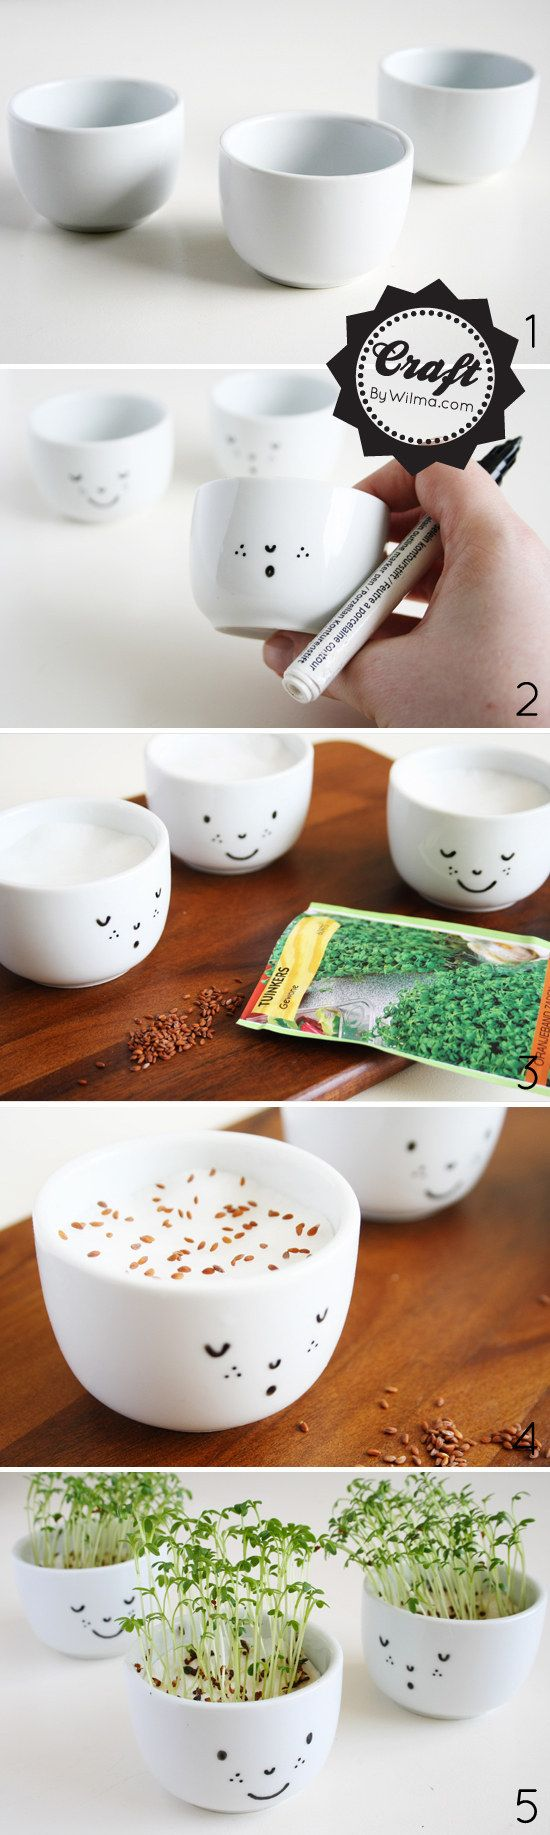 Ceramic marker + inexpensive white cups = Watercress planters. | 17 Easy And Colorful DIYs That Are Perfect For Spring